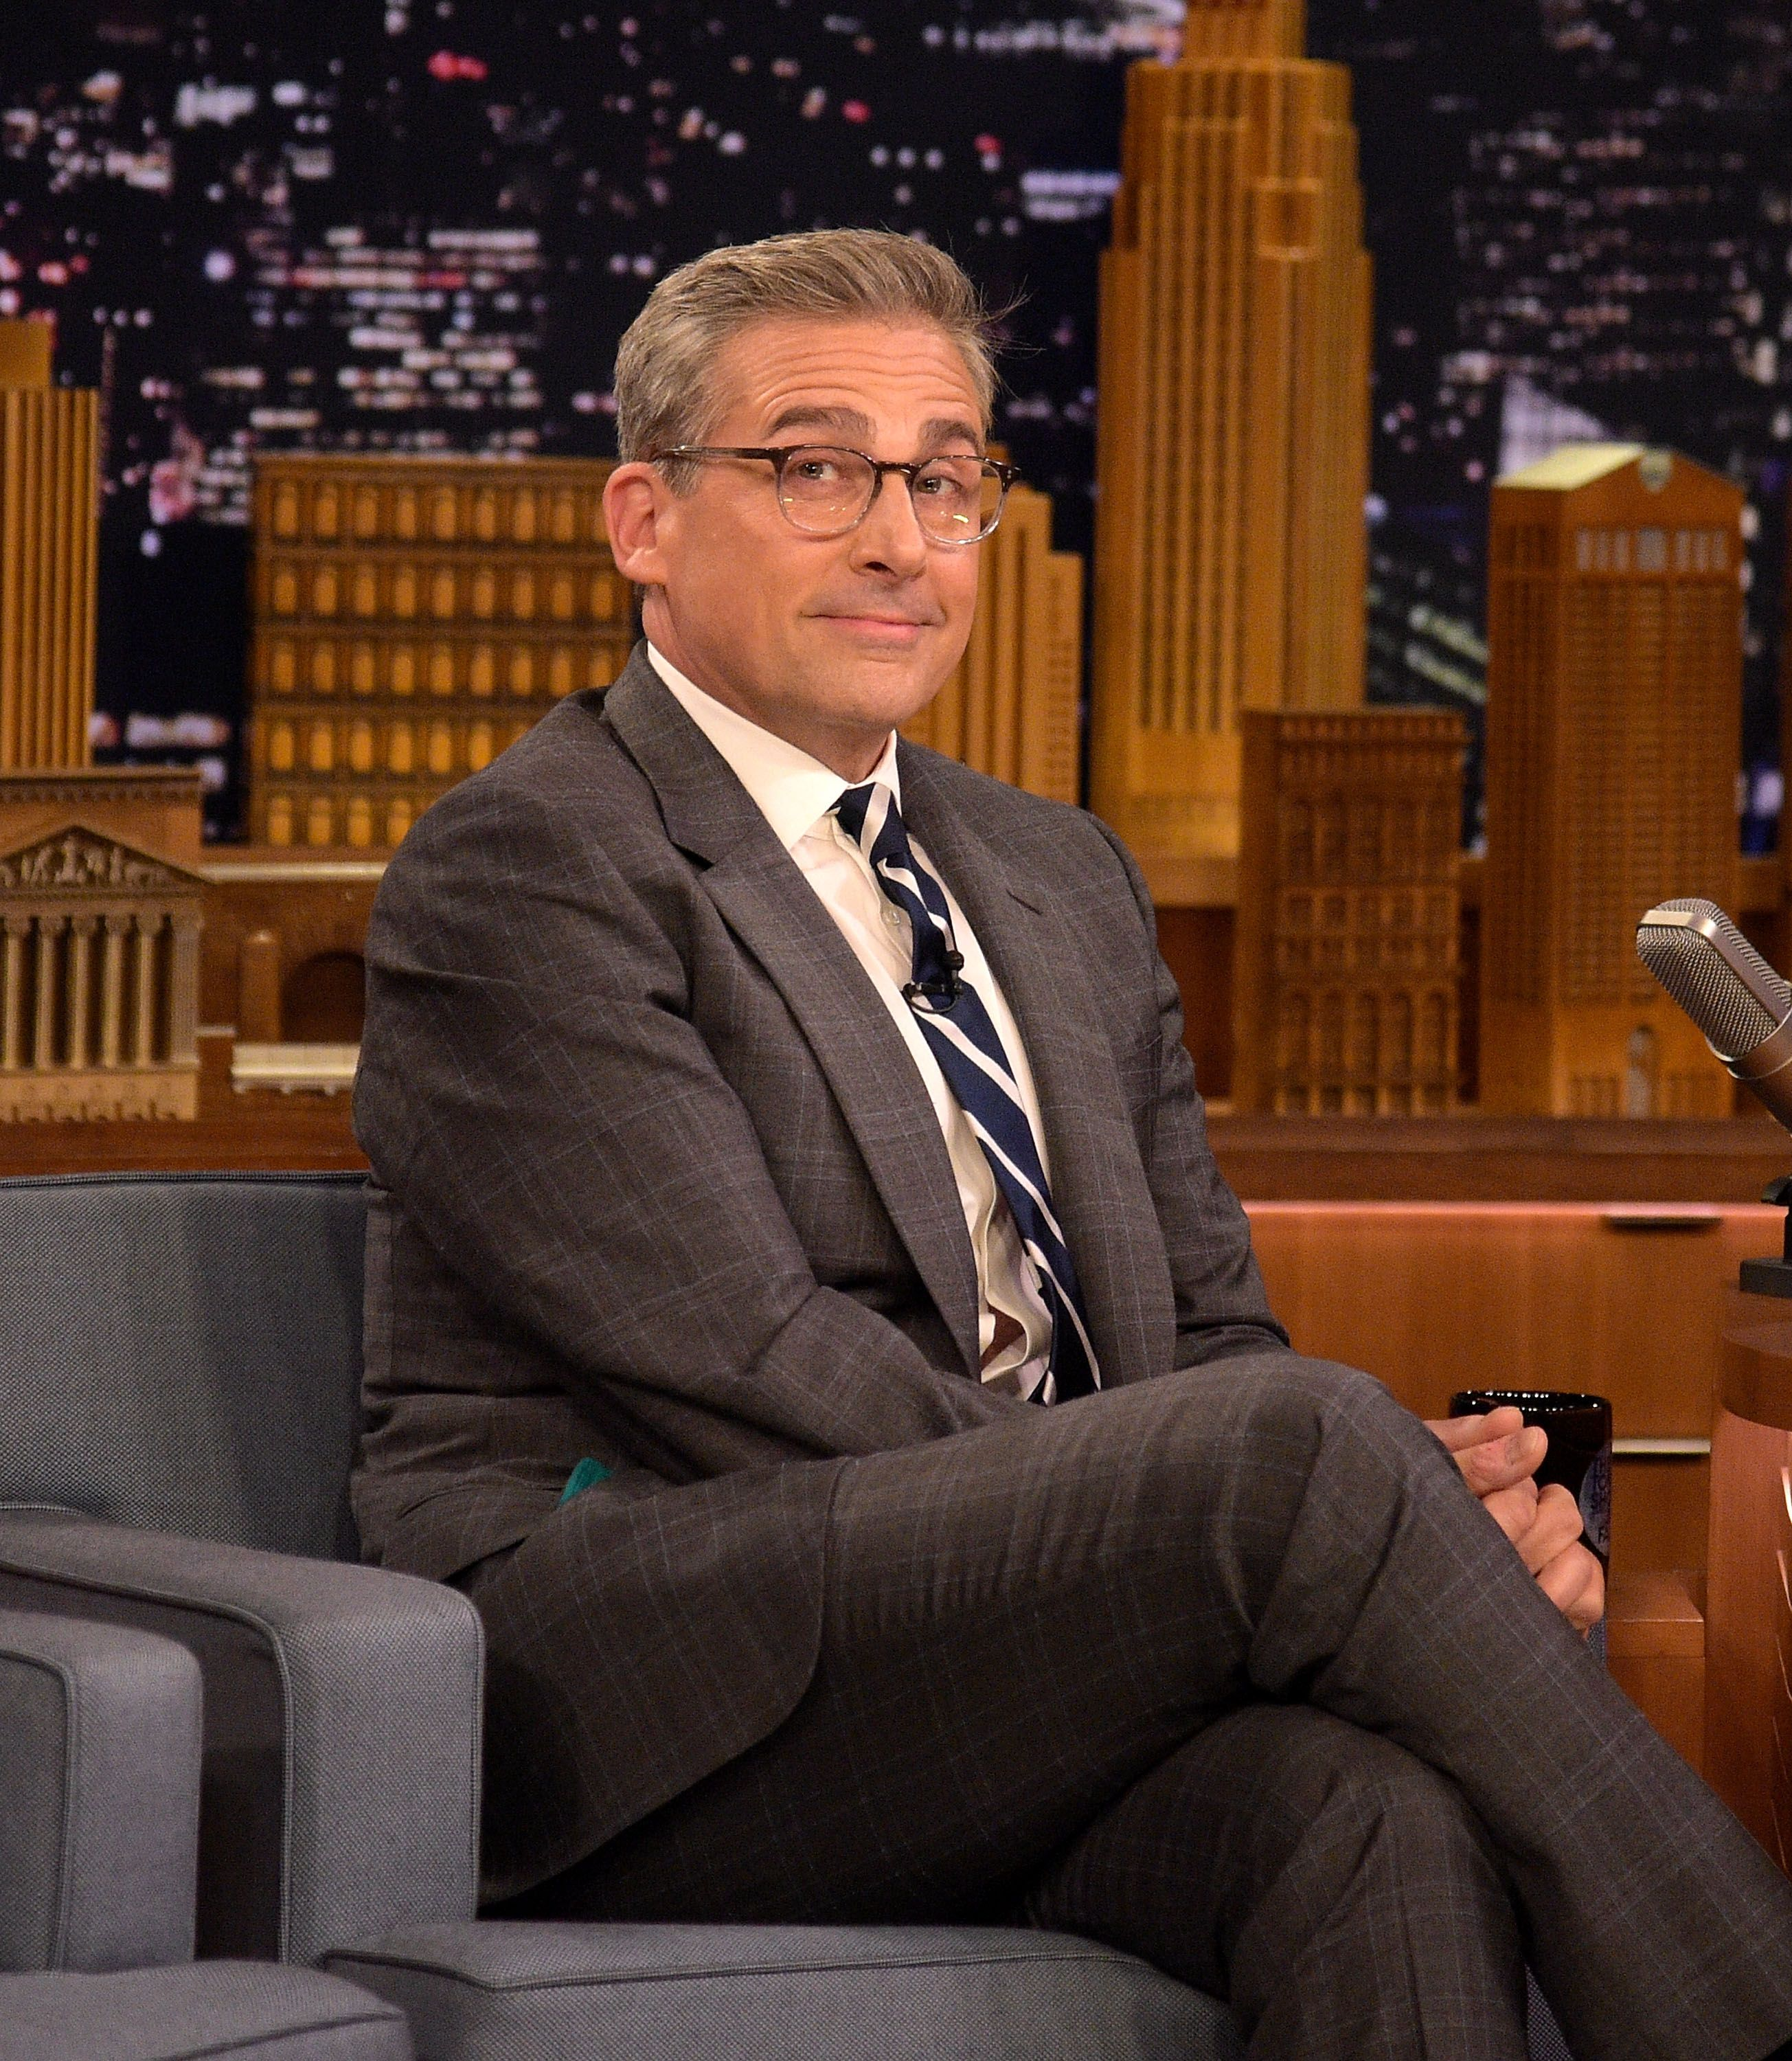 The role in The Office brought Steve Carell success and fame / Getty Images